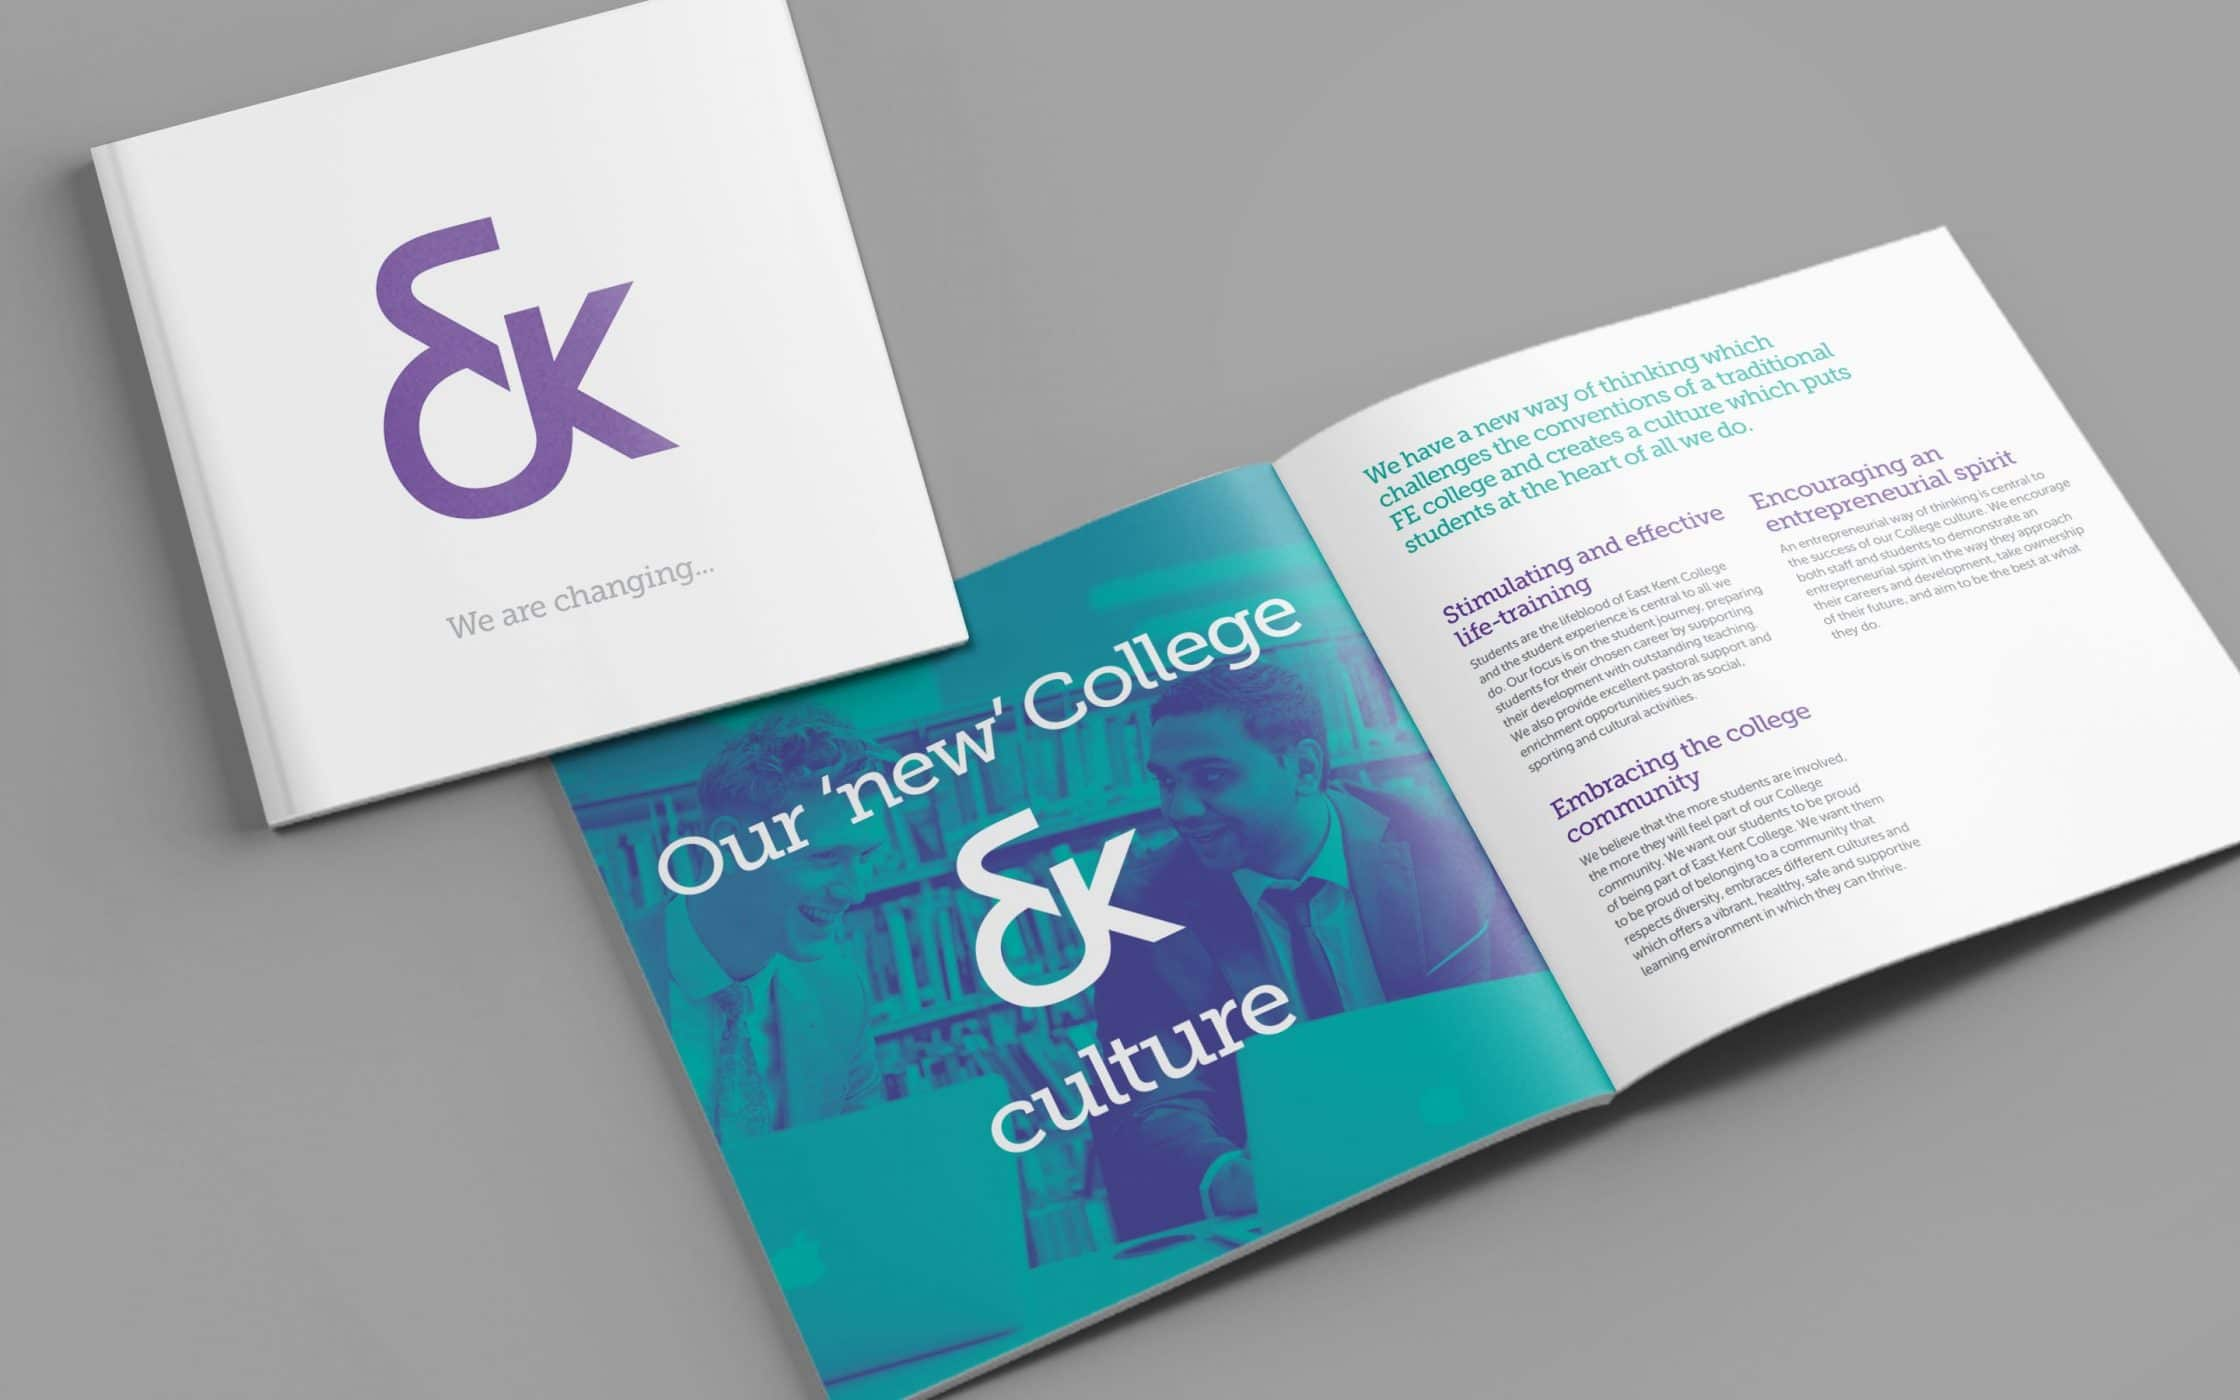 east kent college naming branding by fabrik brands london view larger gallery east kent college